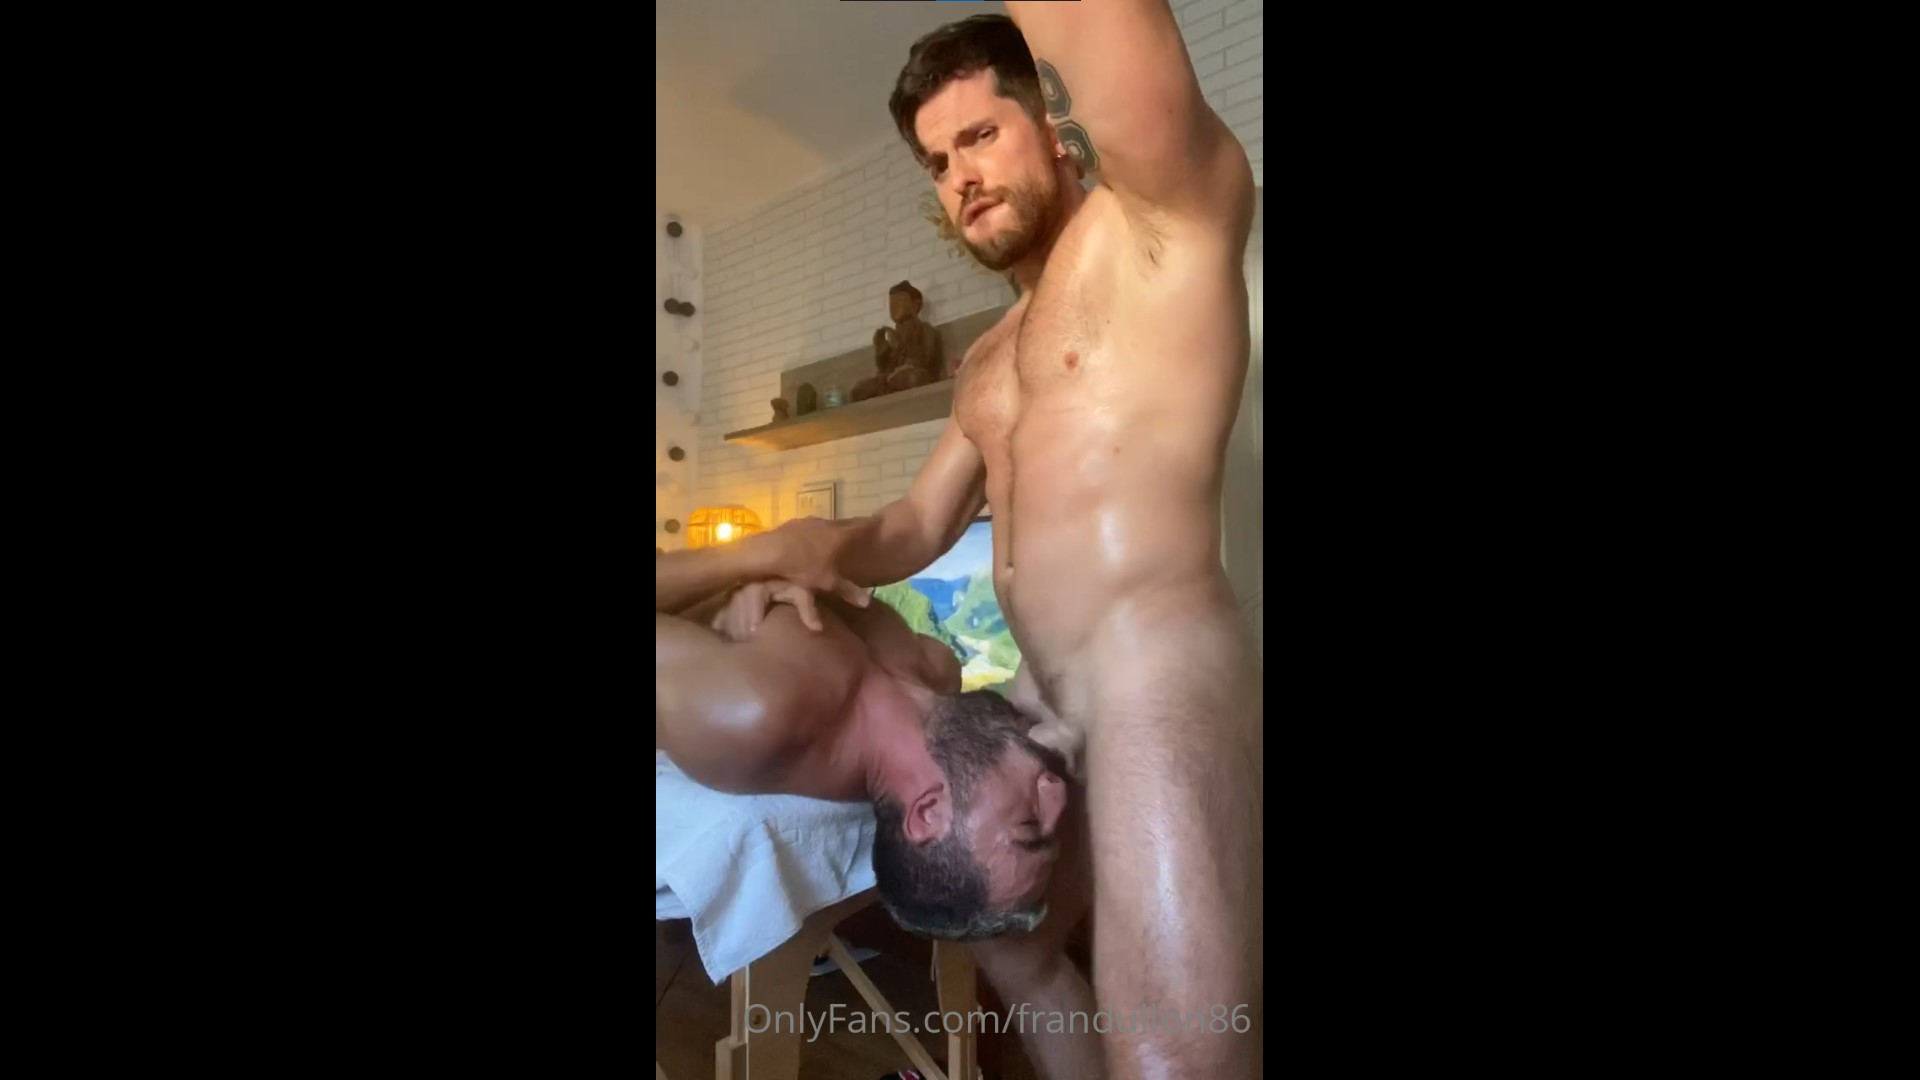 Throat fucking a fit guy and cumming over his face - Frandullon86